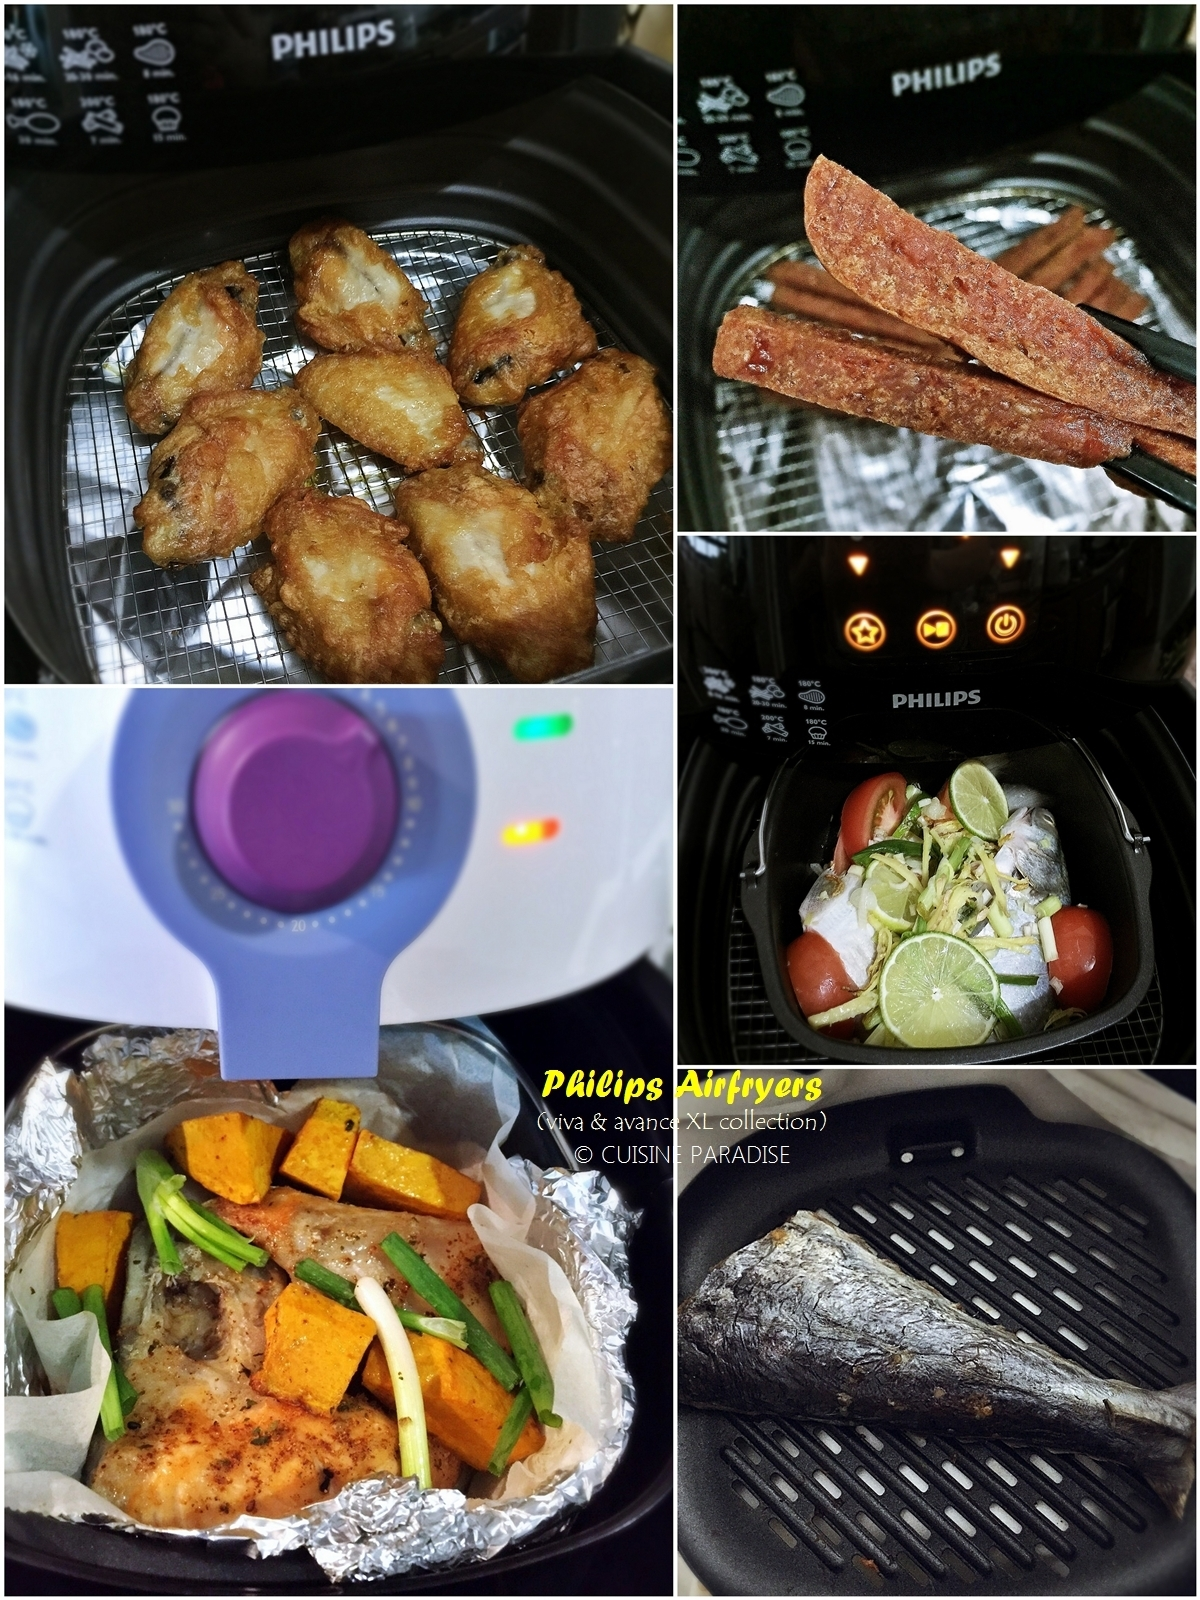 [Recipes] Quick Meals Using Philips Airfryer